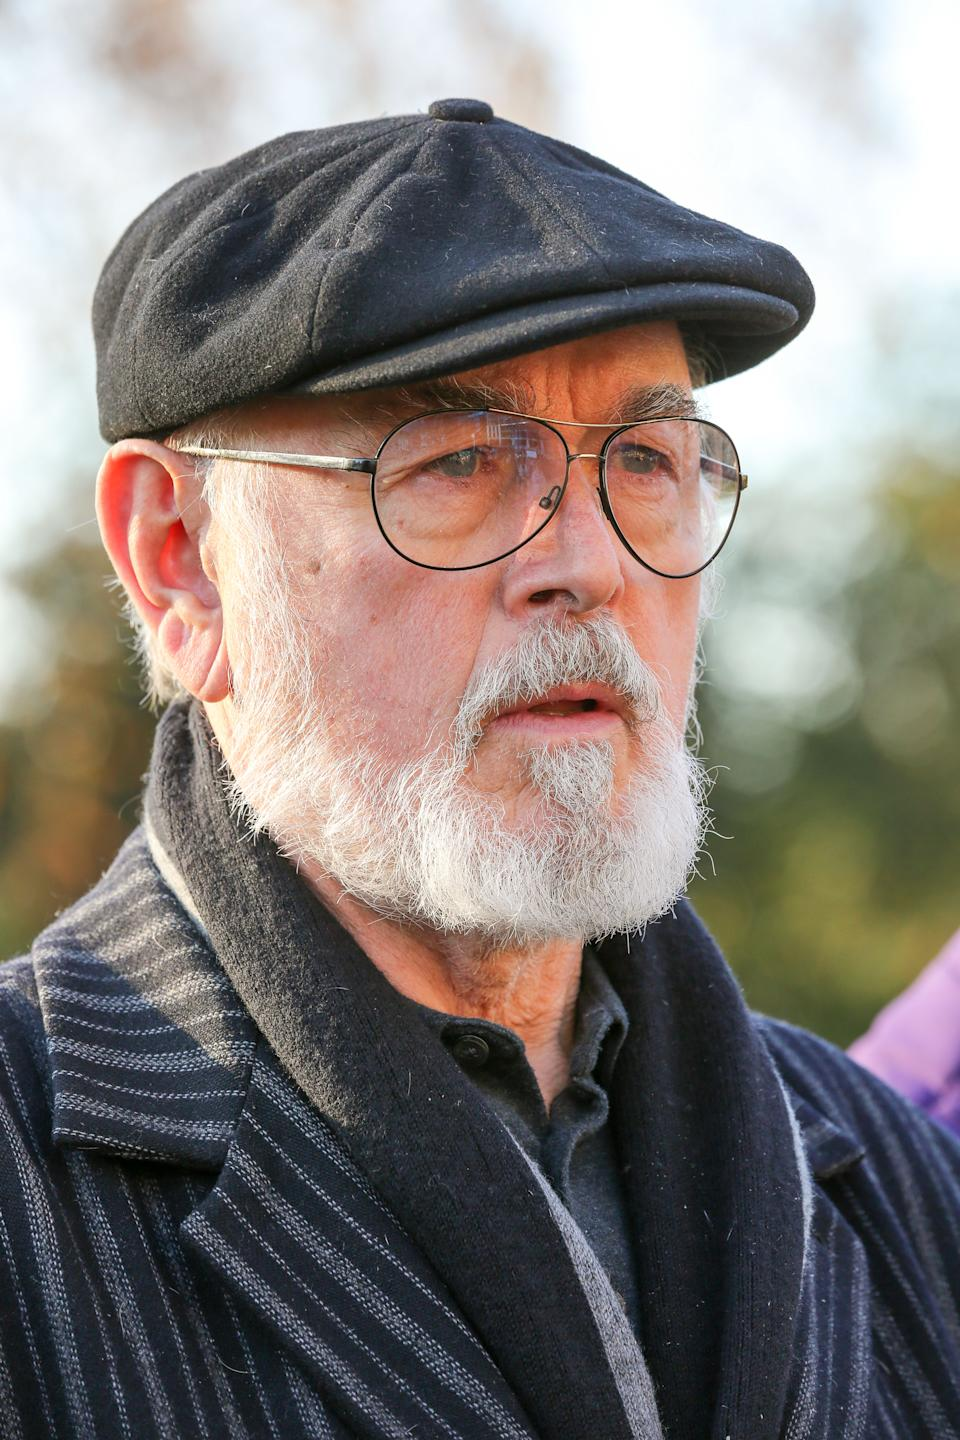 Downton Abbey actor, Peter Egan attends the unveiling of 21 bronze life-sized elephants sculptured by artists, Gillie and Marc at Marble Arch in London. The sculptures are to hight the plight of the species which faces extinction by 2040. The herd of elephants will be on display for one year, until 4 December 2020. (Photo by Steve Taylor / SOPA Images/Sipa USA)